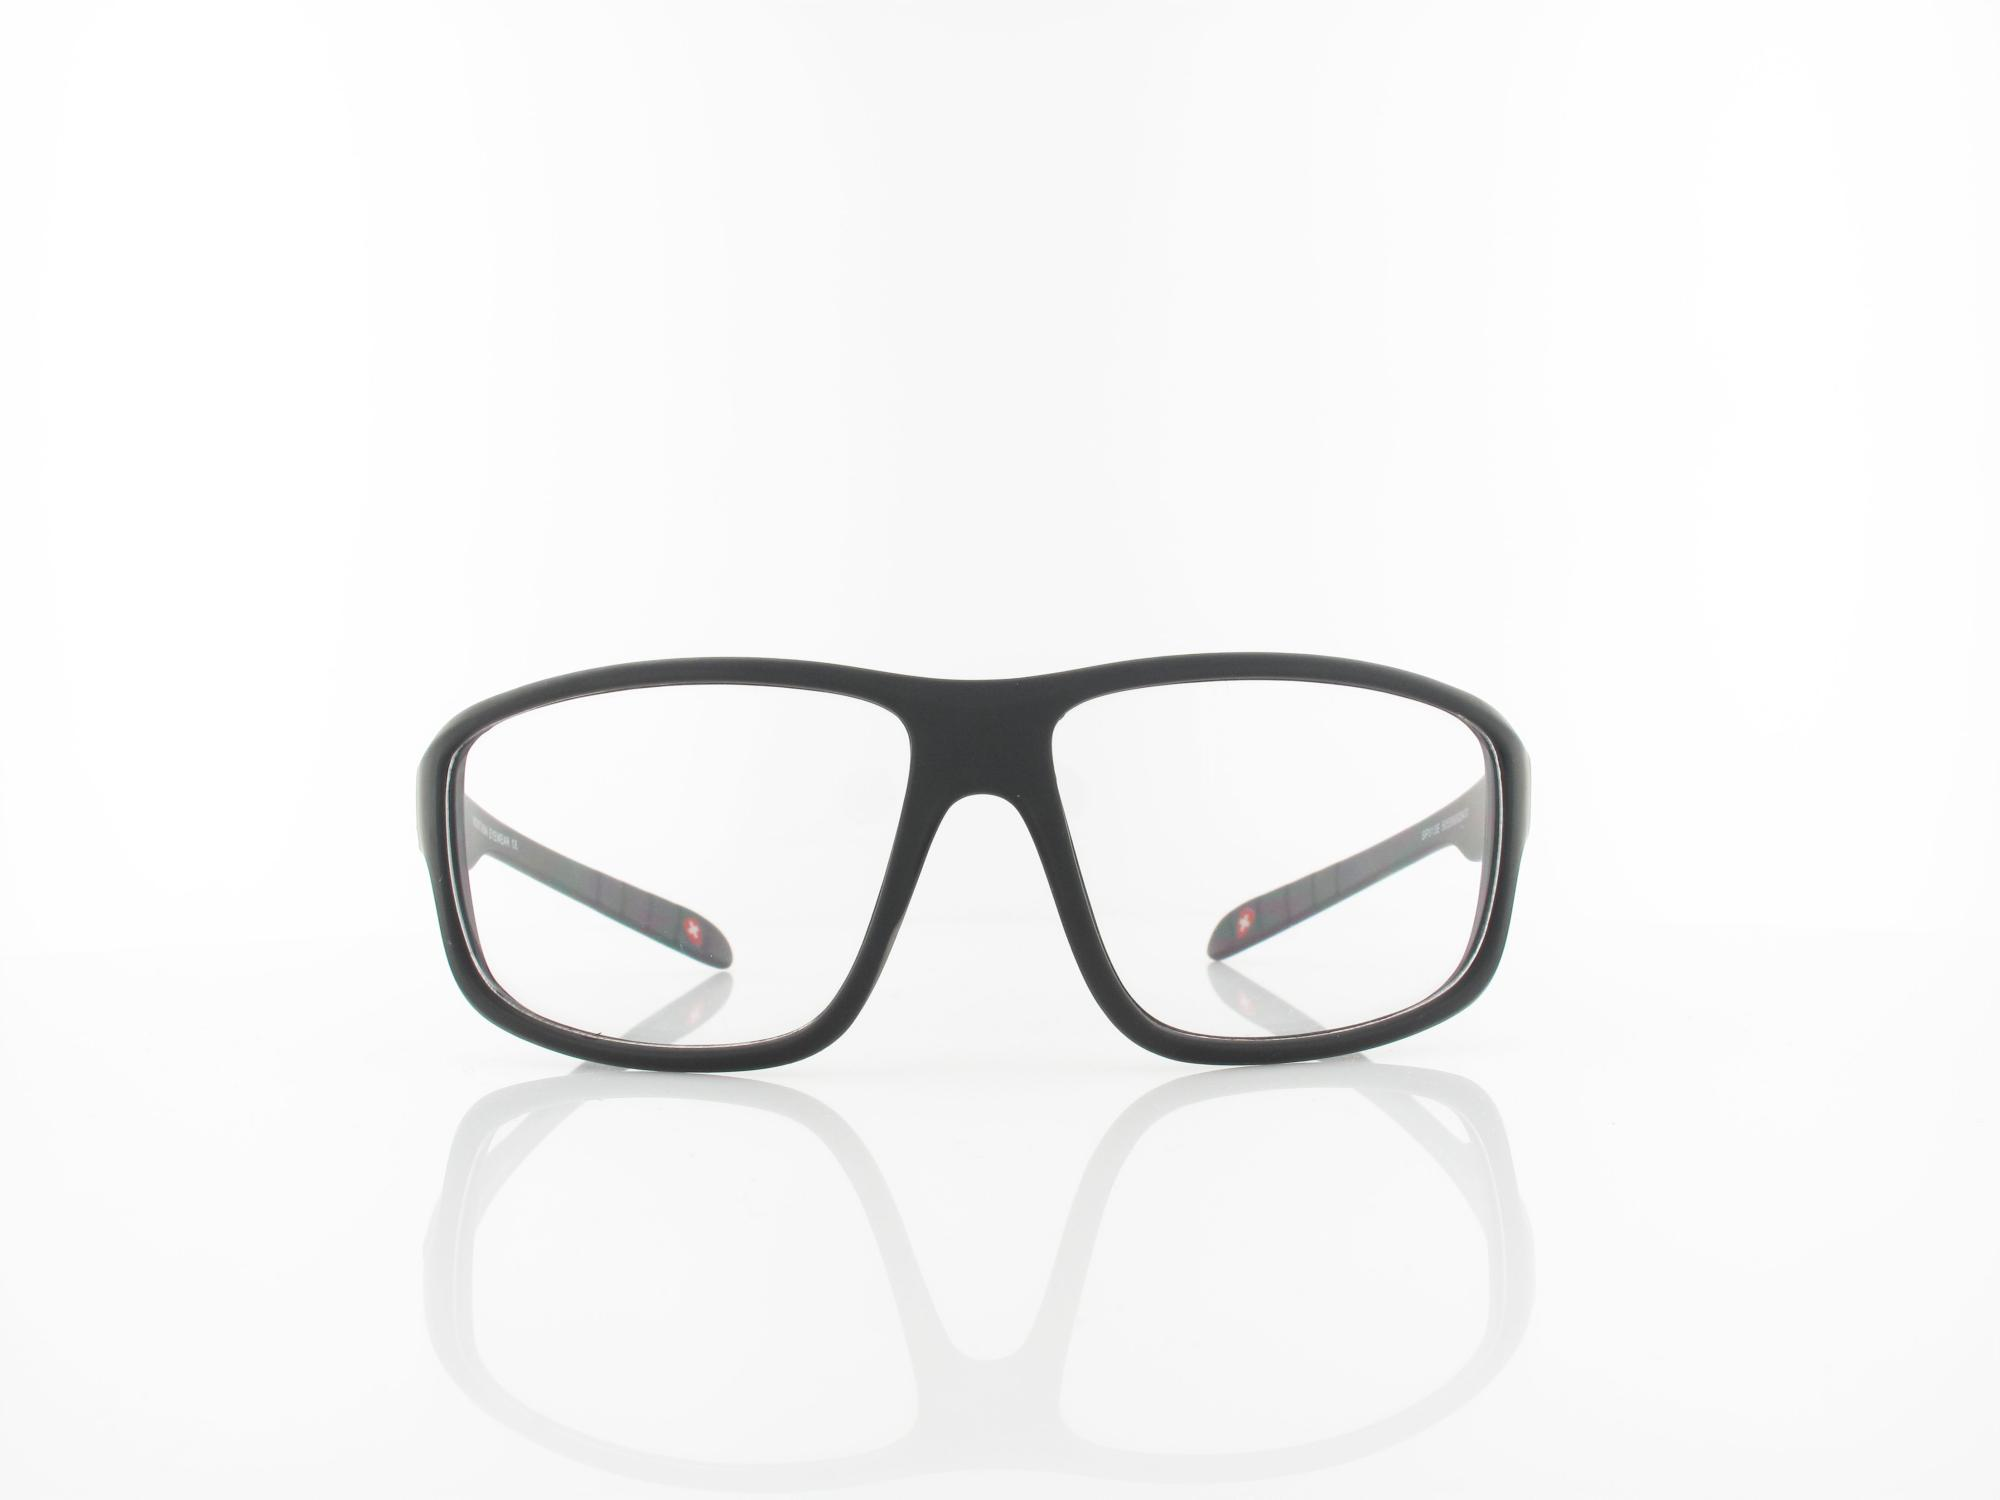 Brilando | SP313 E 63 | matte black / transparent